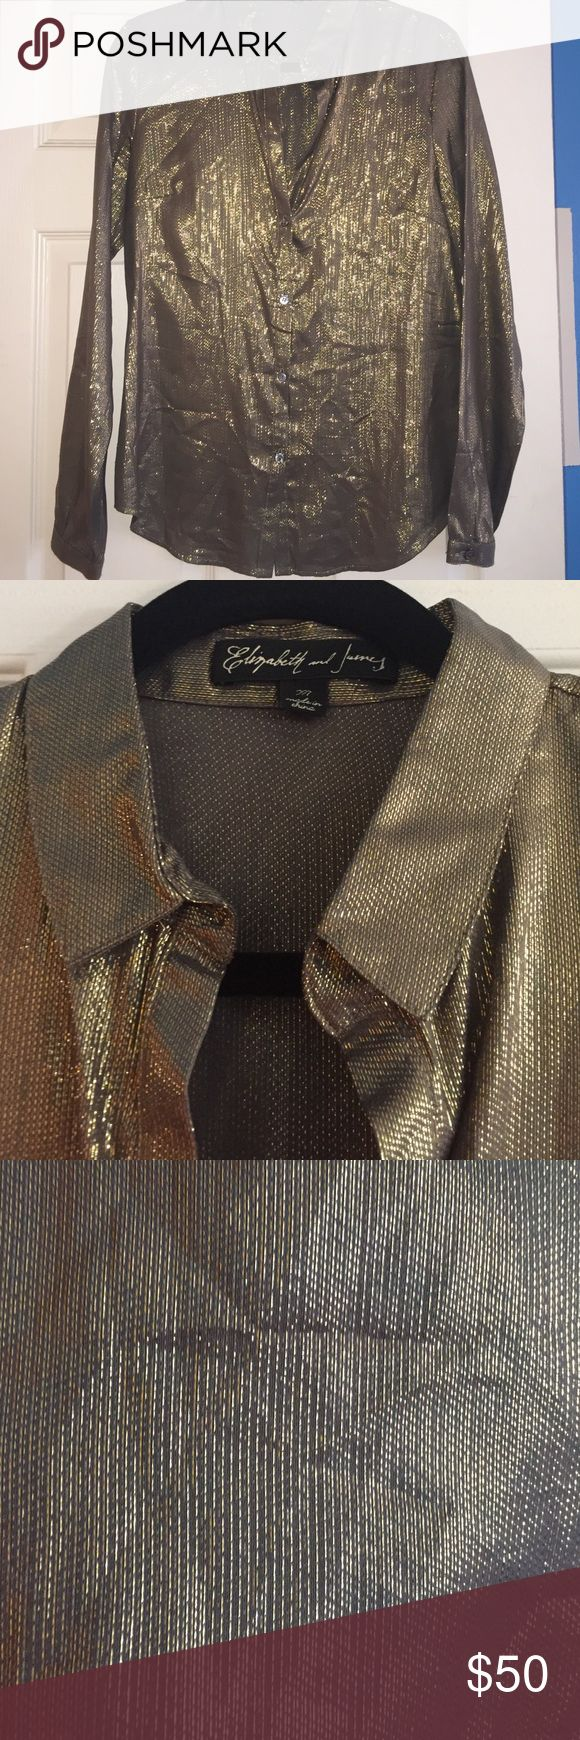 Elizabeth and James gold metallic blouse, medium Elizabeth and James gold metallic button down blouse, long sleeves, great condition, size medium Elizabeth and James Tops Button Down Shirts